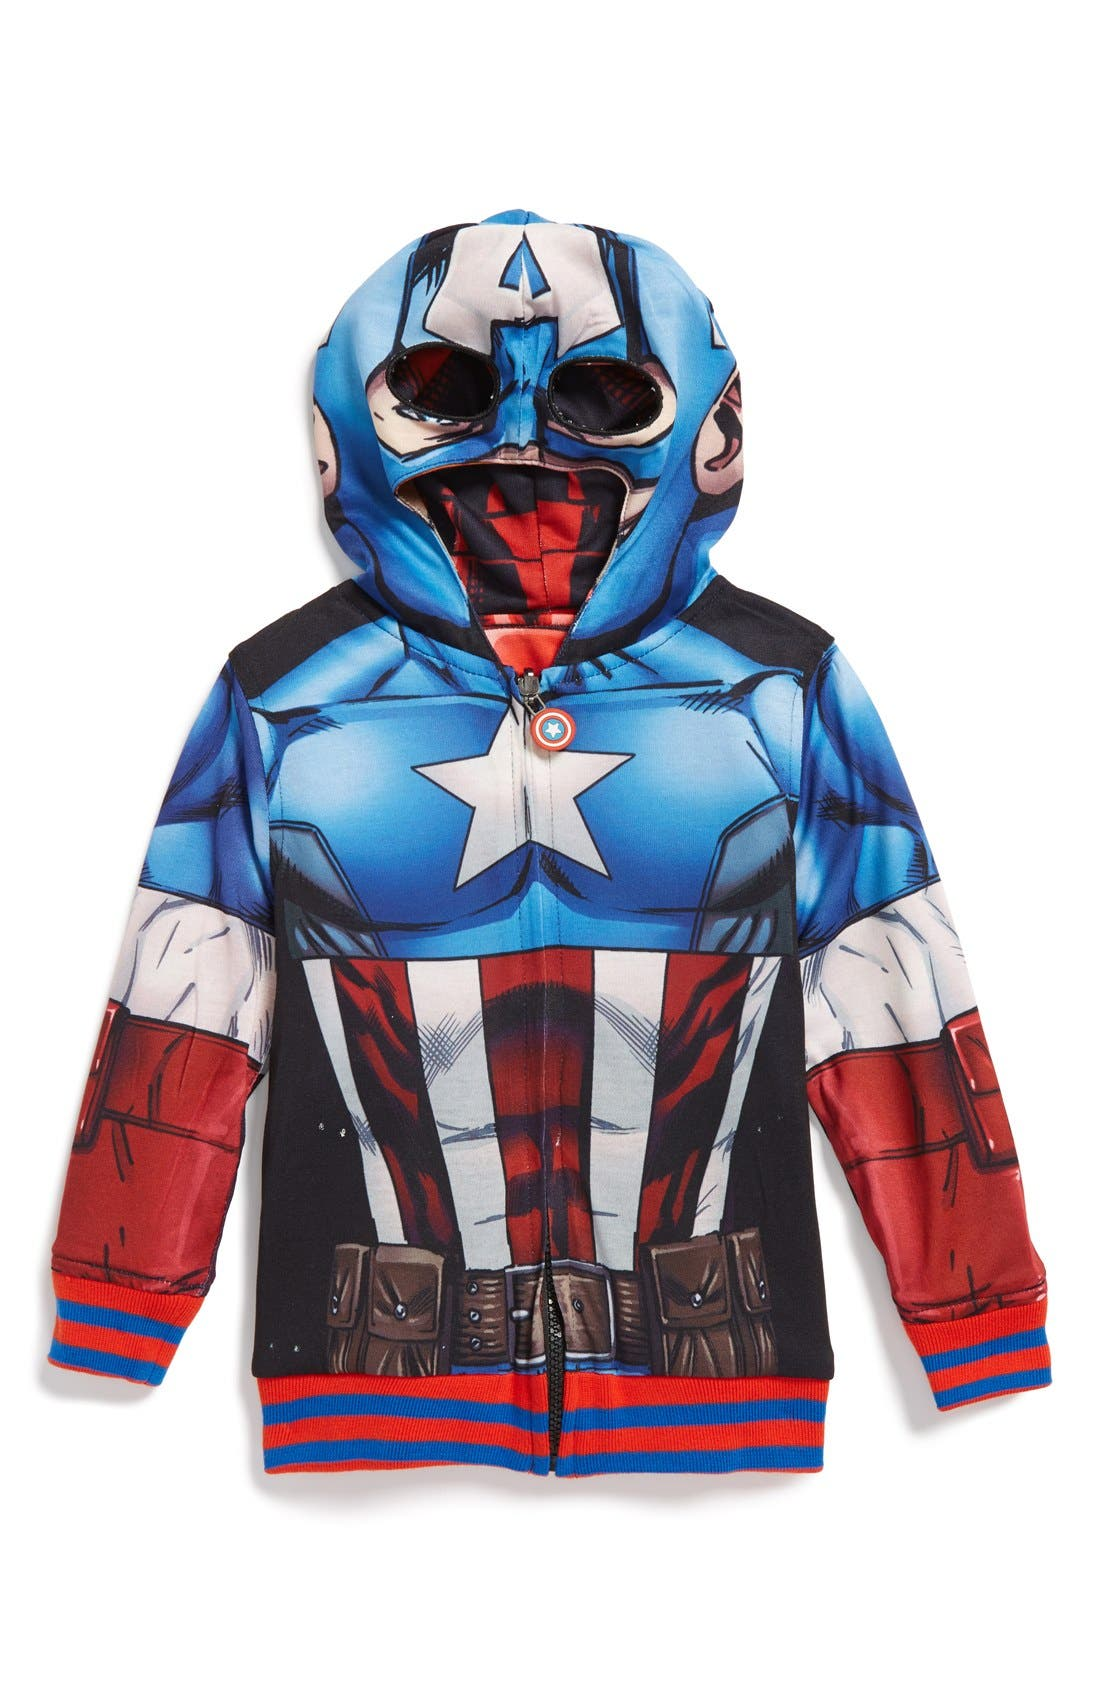 'Marvel Avengers - Iron Man/Captain America' Reversible Hoodie,                             Alternate thumbnail 2, color,                             615